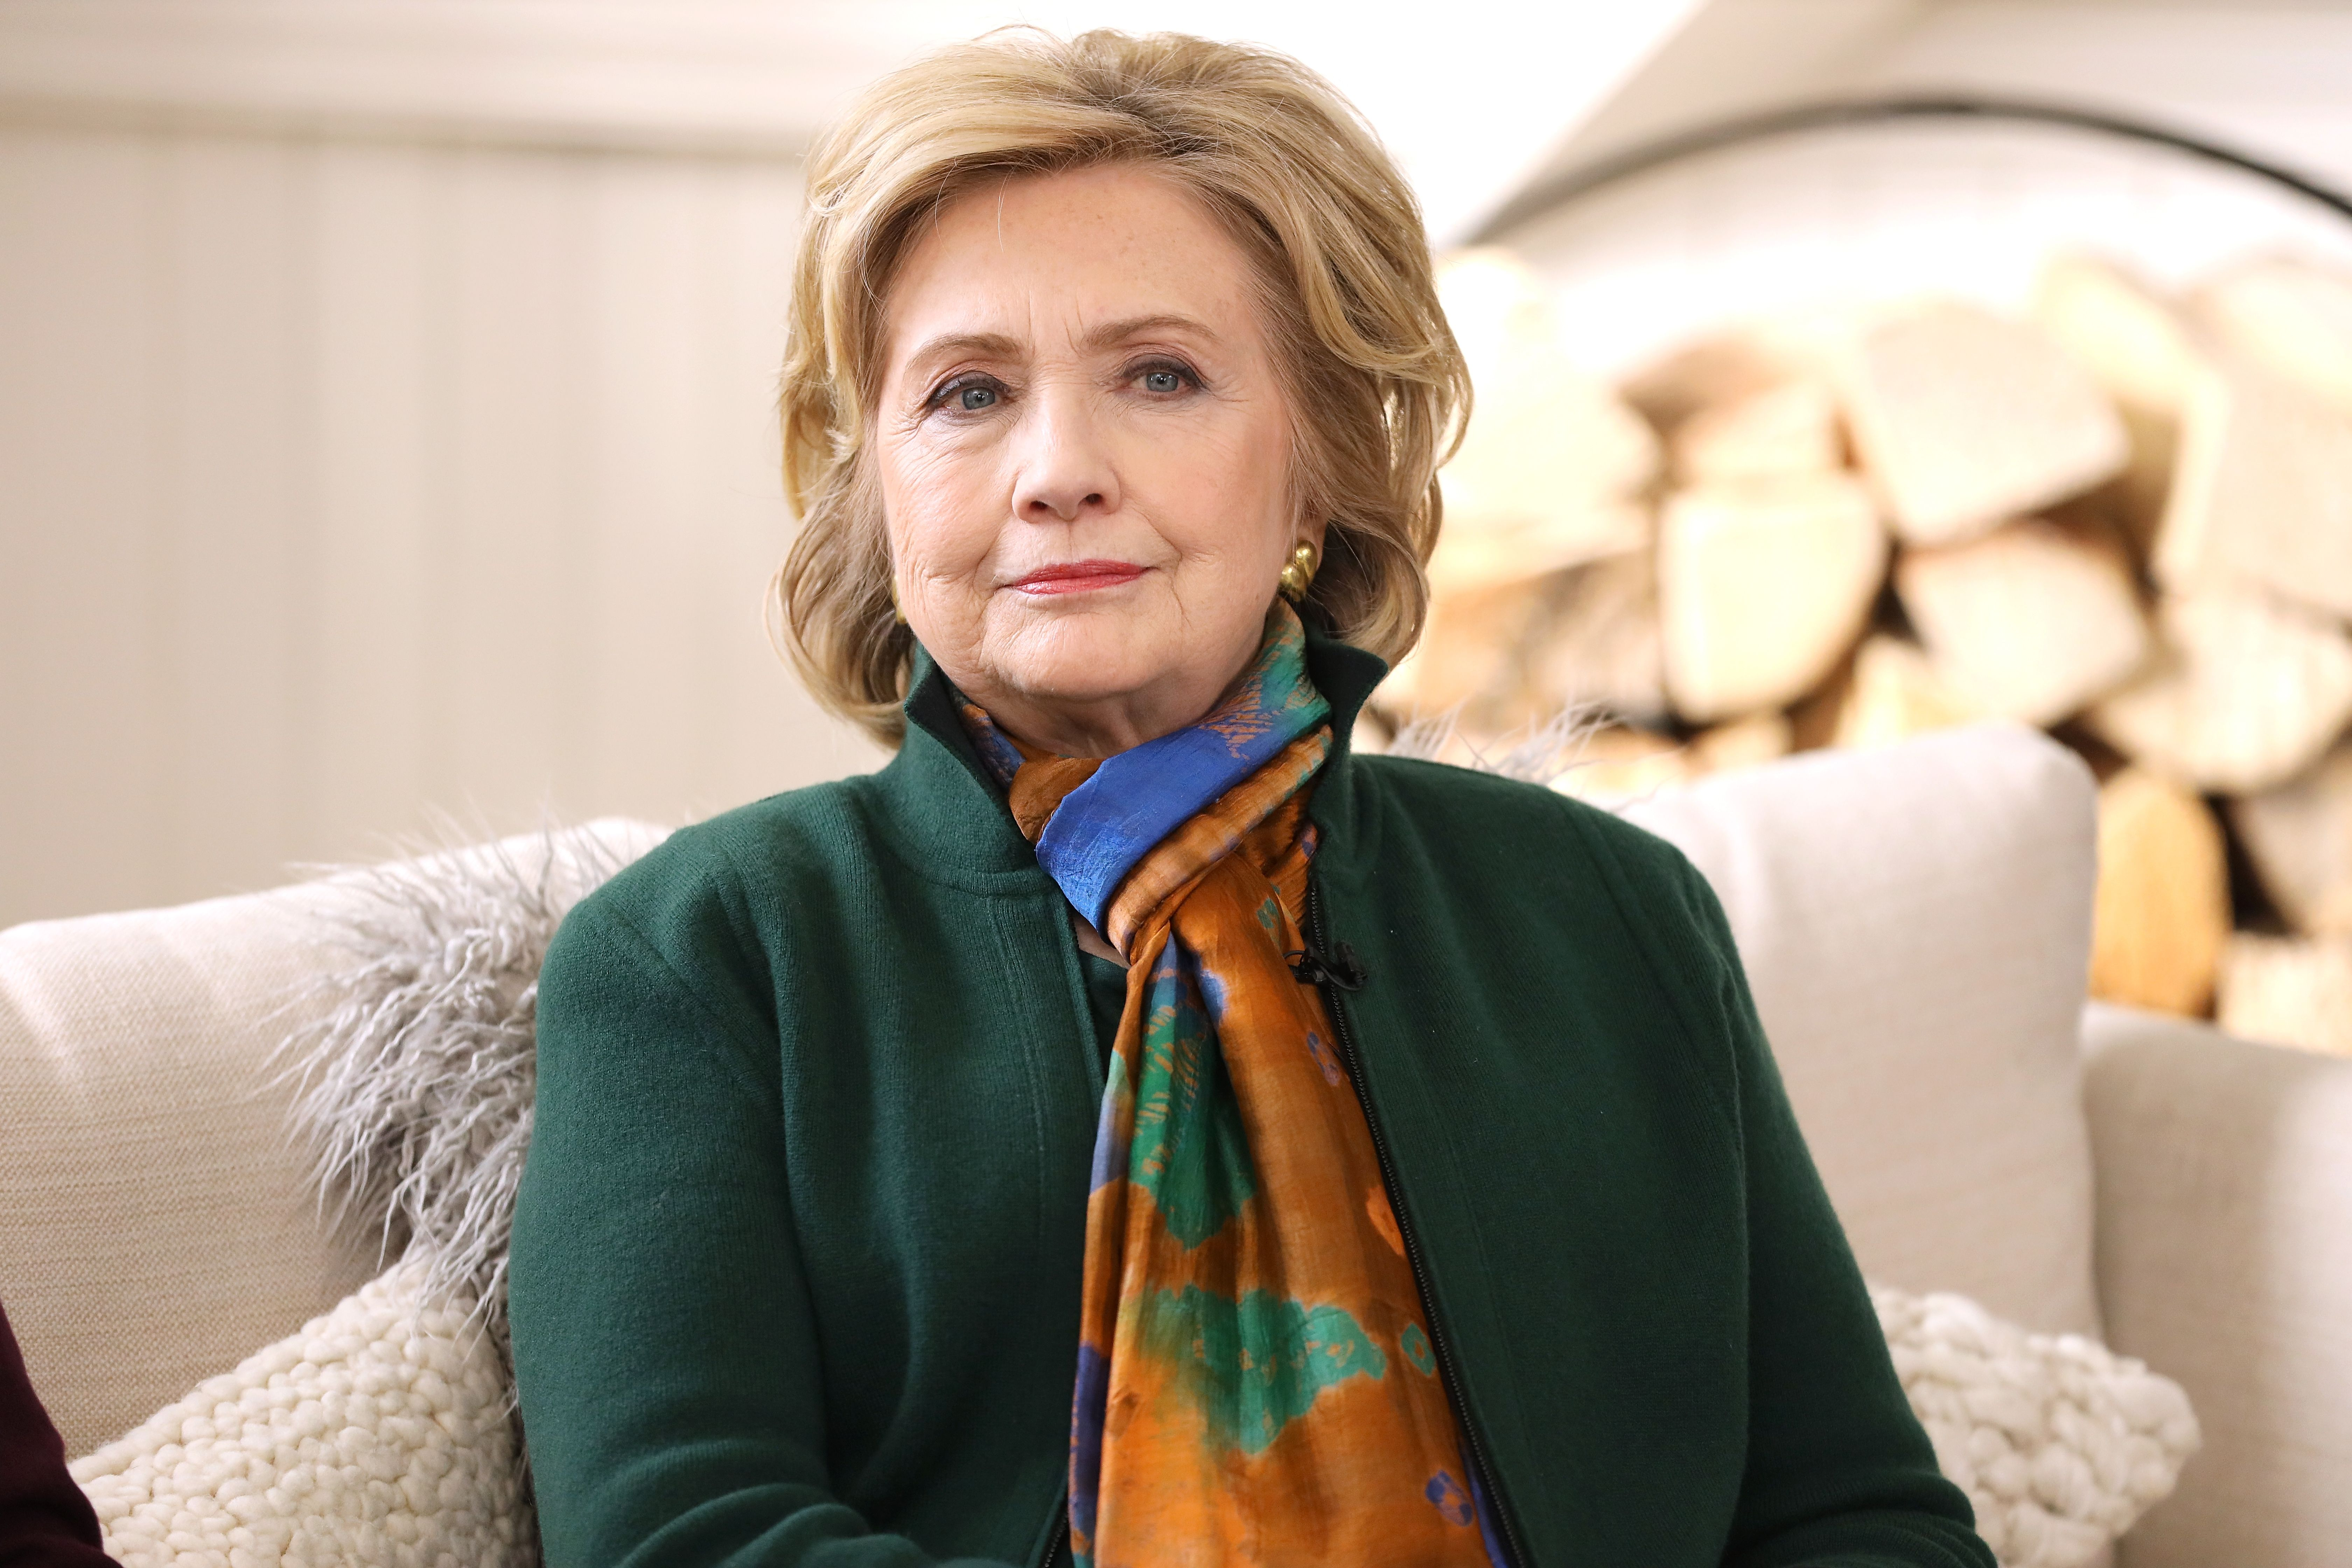 Hillary Clinton-Produced Drama 'The Woman's Hour' in Development at The CW